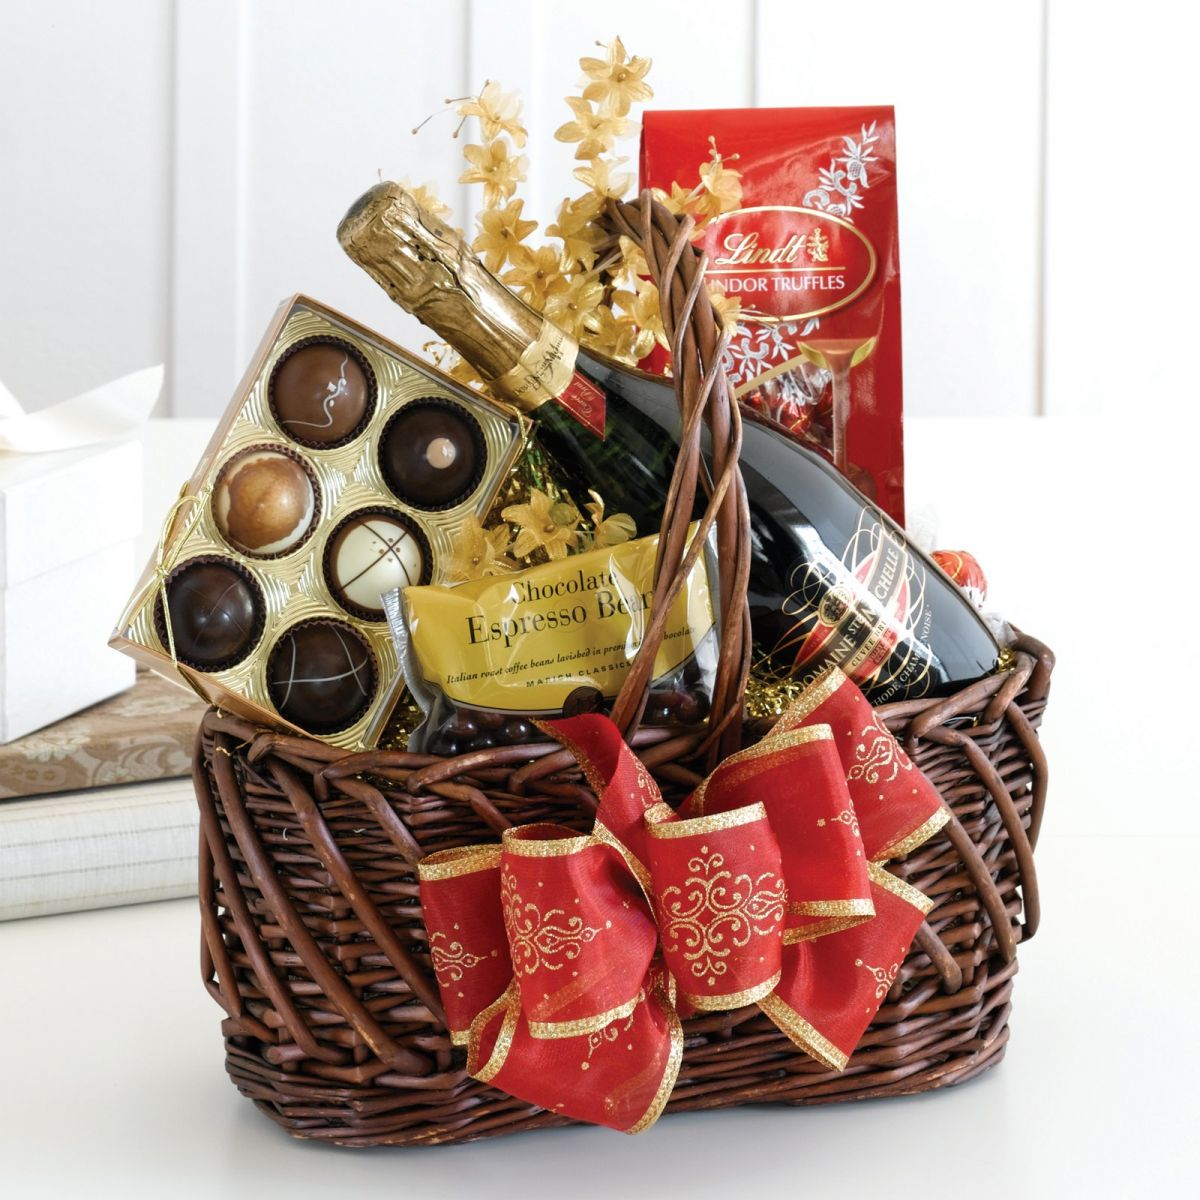 Gift Basket Ideas Gifts For Men Girls Boyfriends Valentines Day Of The Holy Spirit Husband Boys Him Girlfriend Her